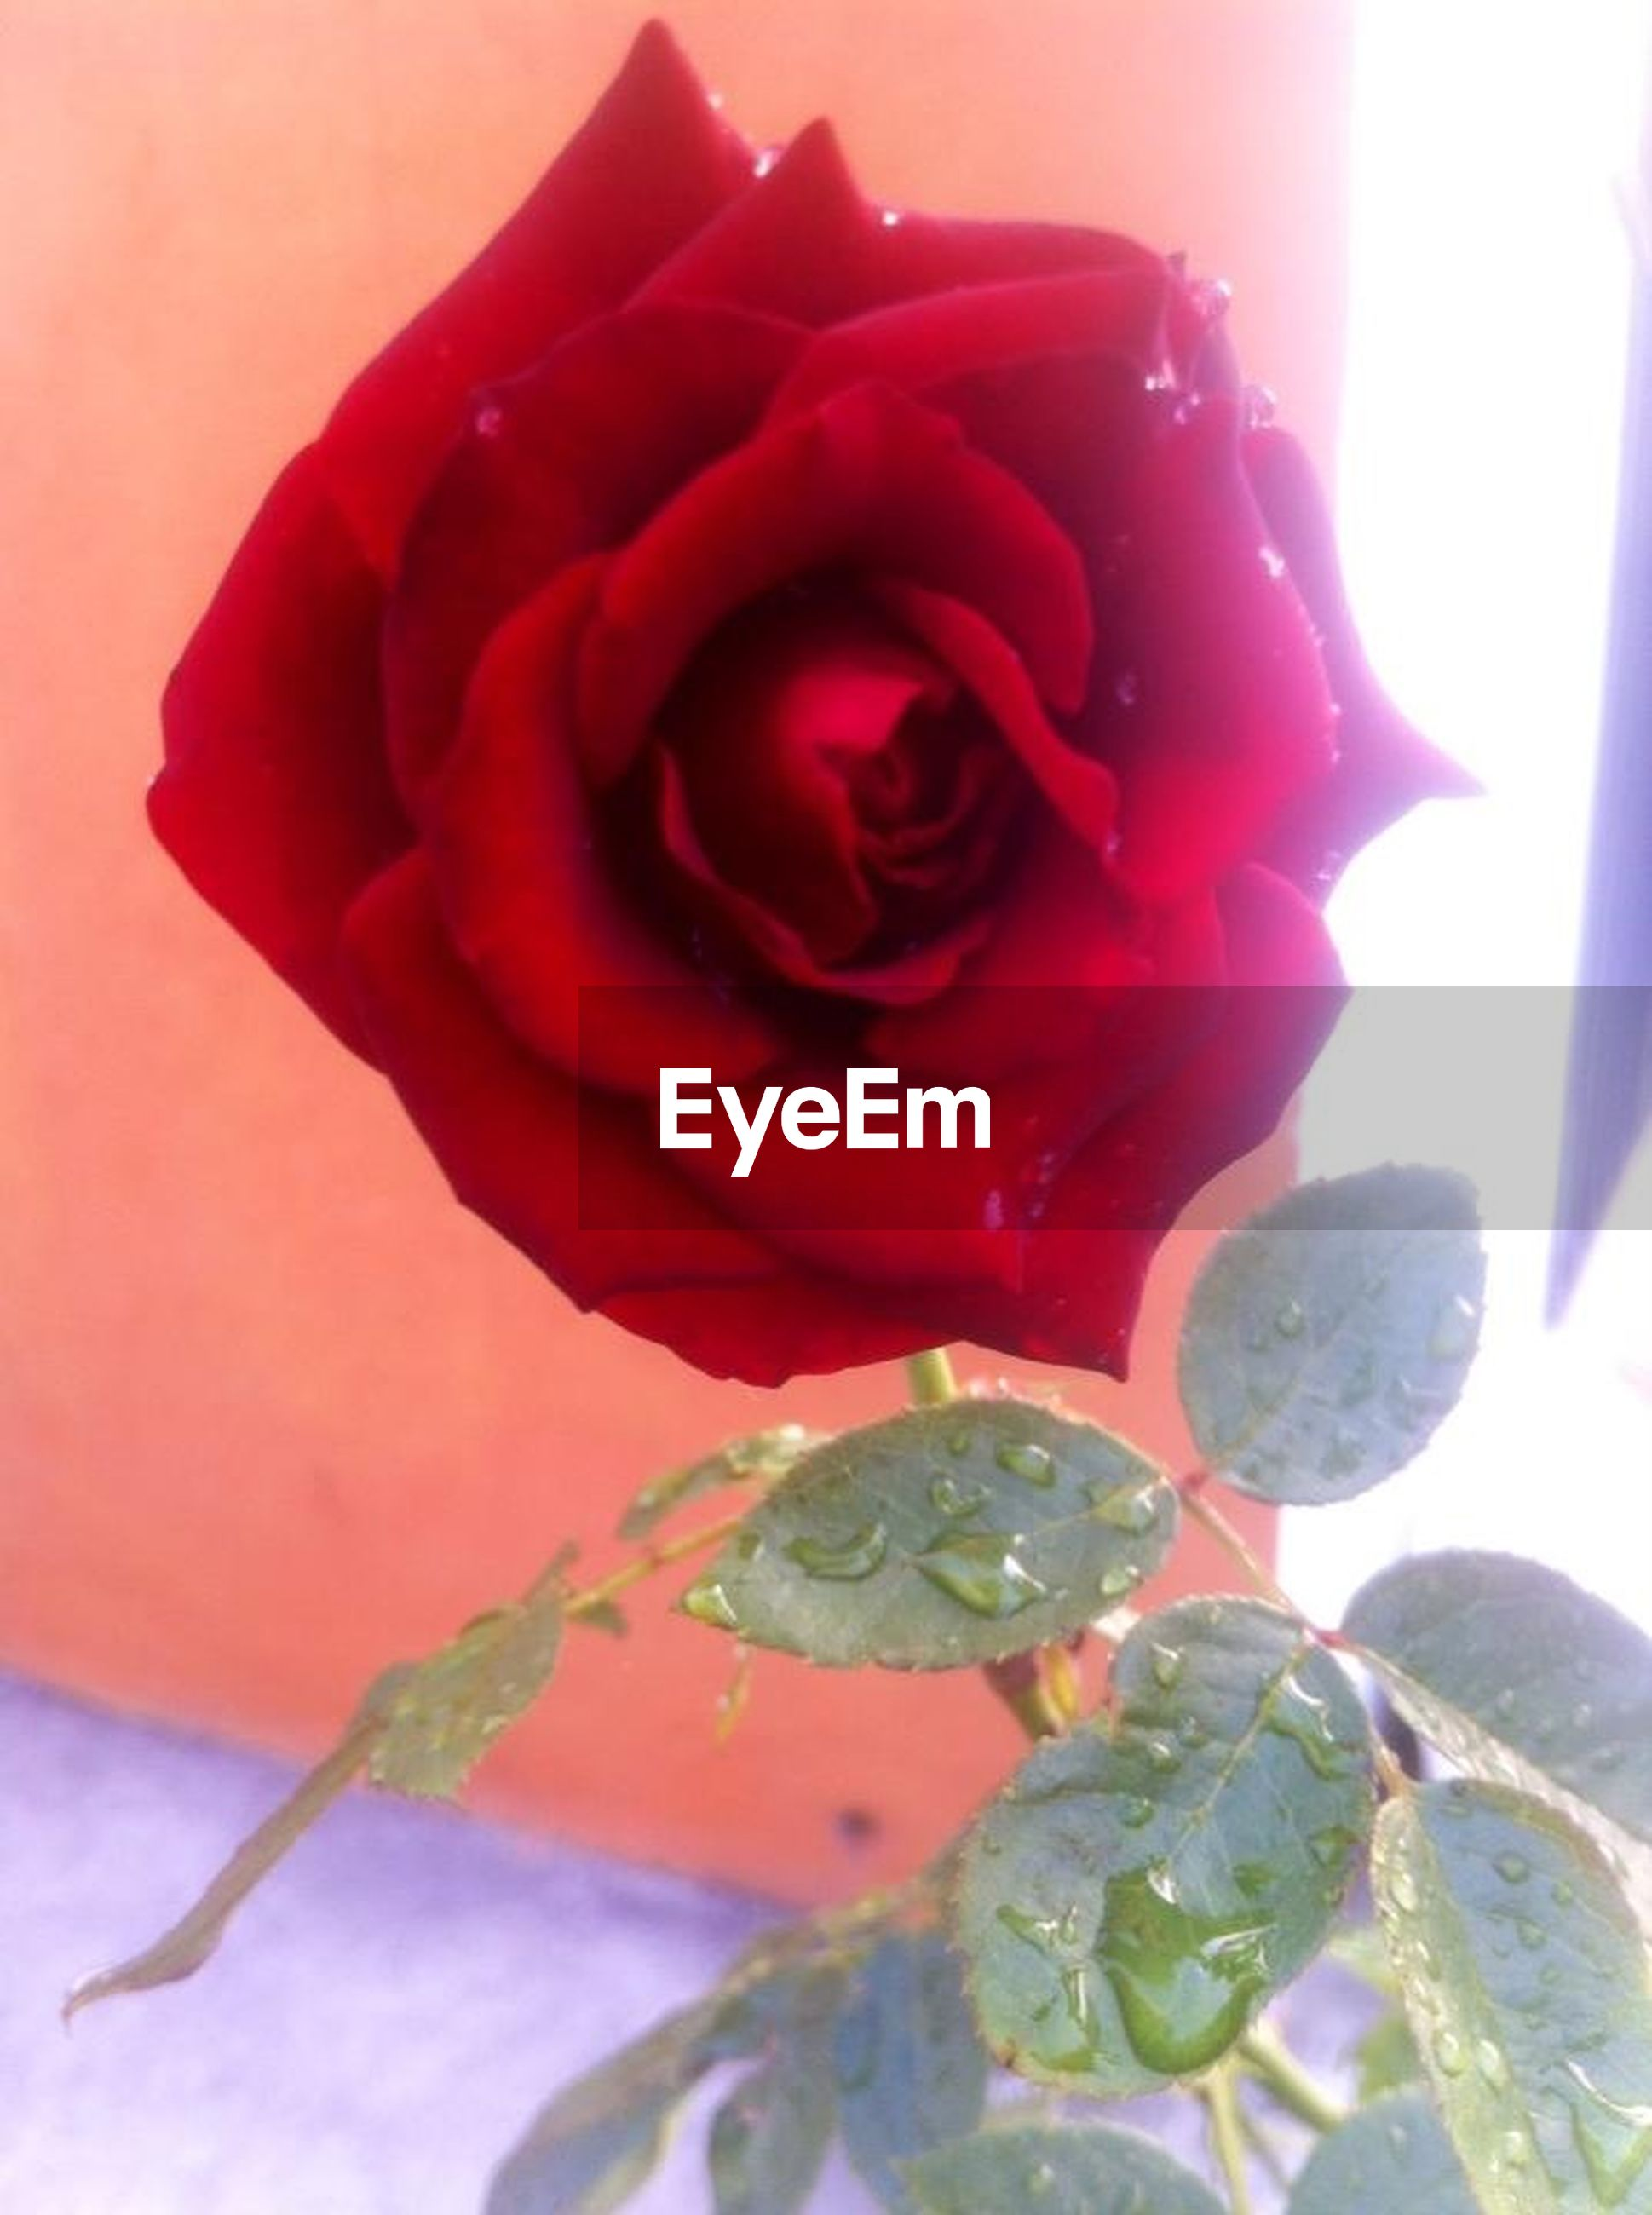 flower, petal, fragility, freshness, rose - flower, flower head, growth, close-up, beauty in nature, plant, leaf, red, nature, blooming, focus on foreground, sunlight, single flower, rose, in bloom, stem